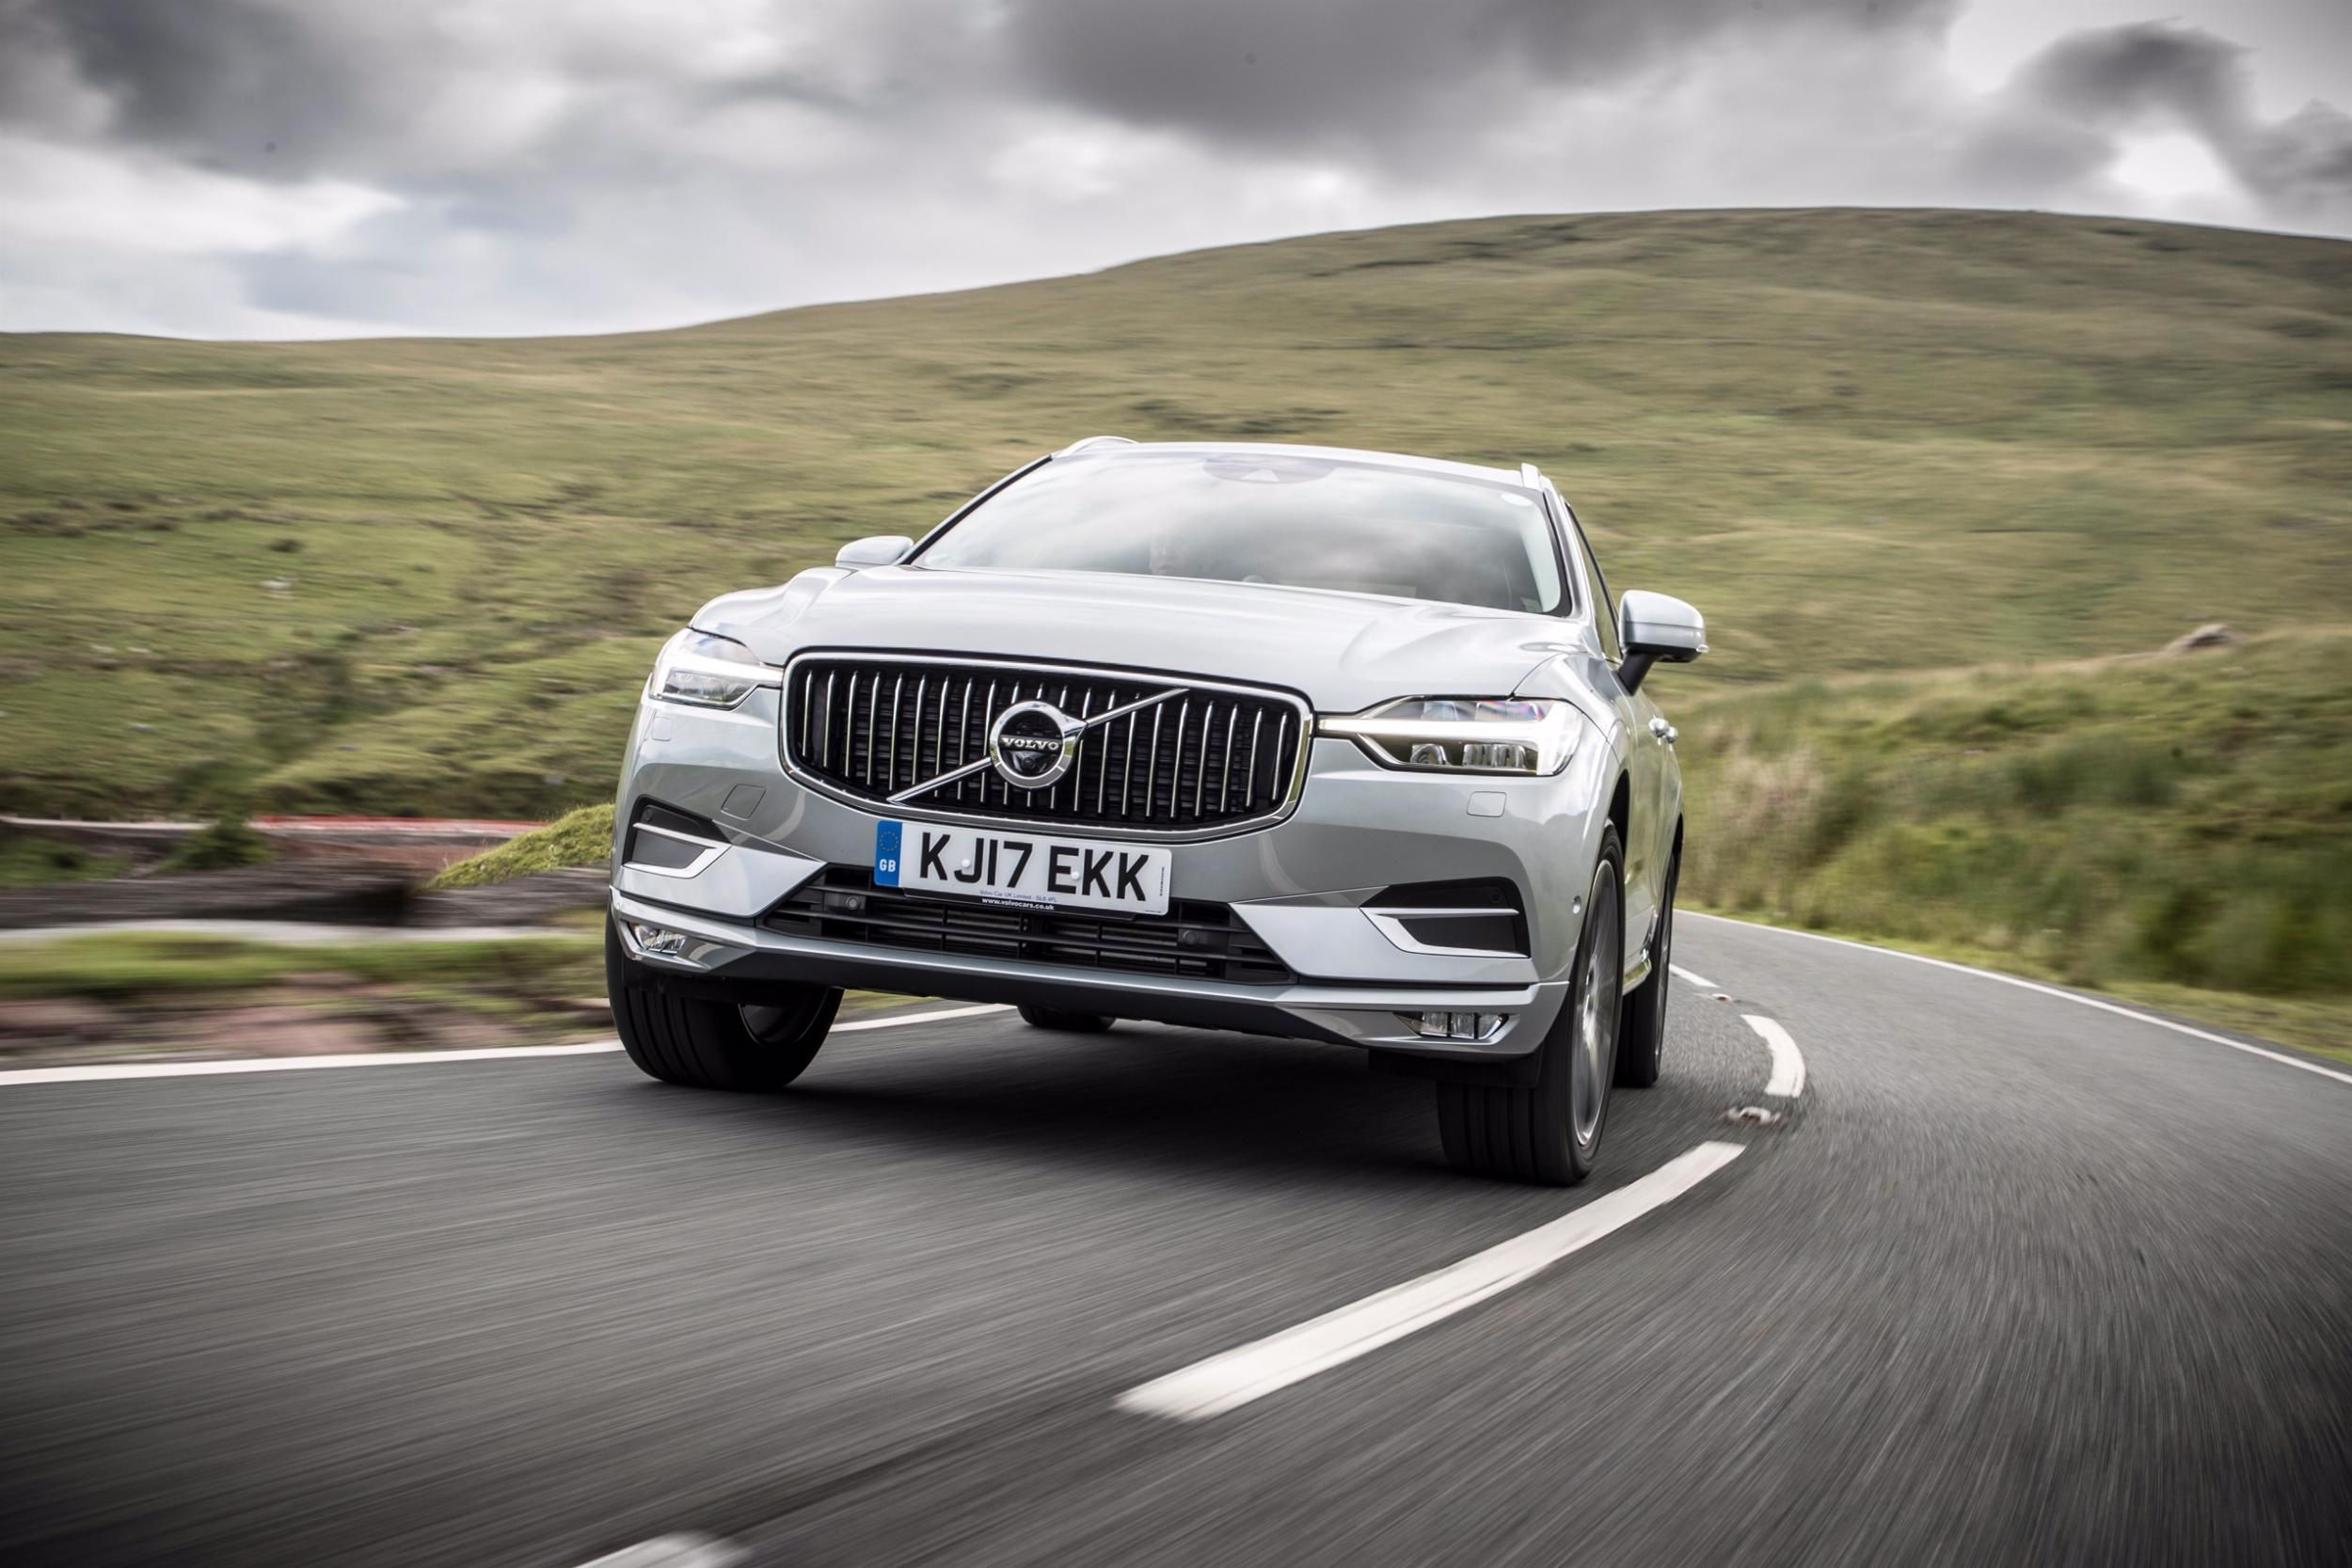 volvo xc60 - latest news, breaking stories and comment - the independent